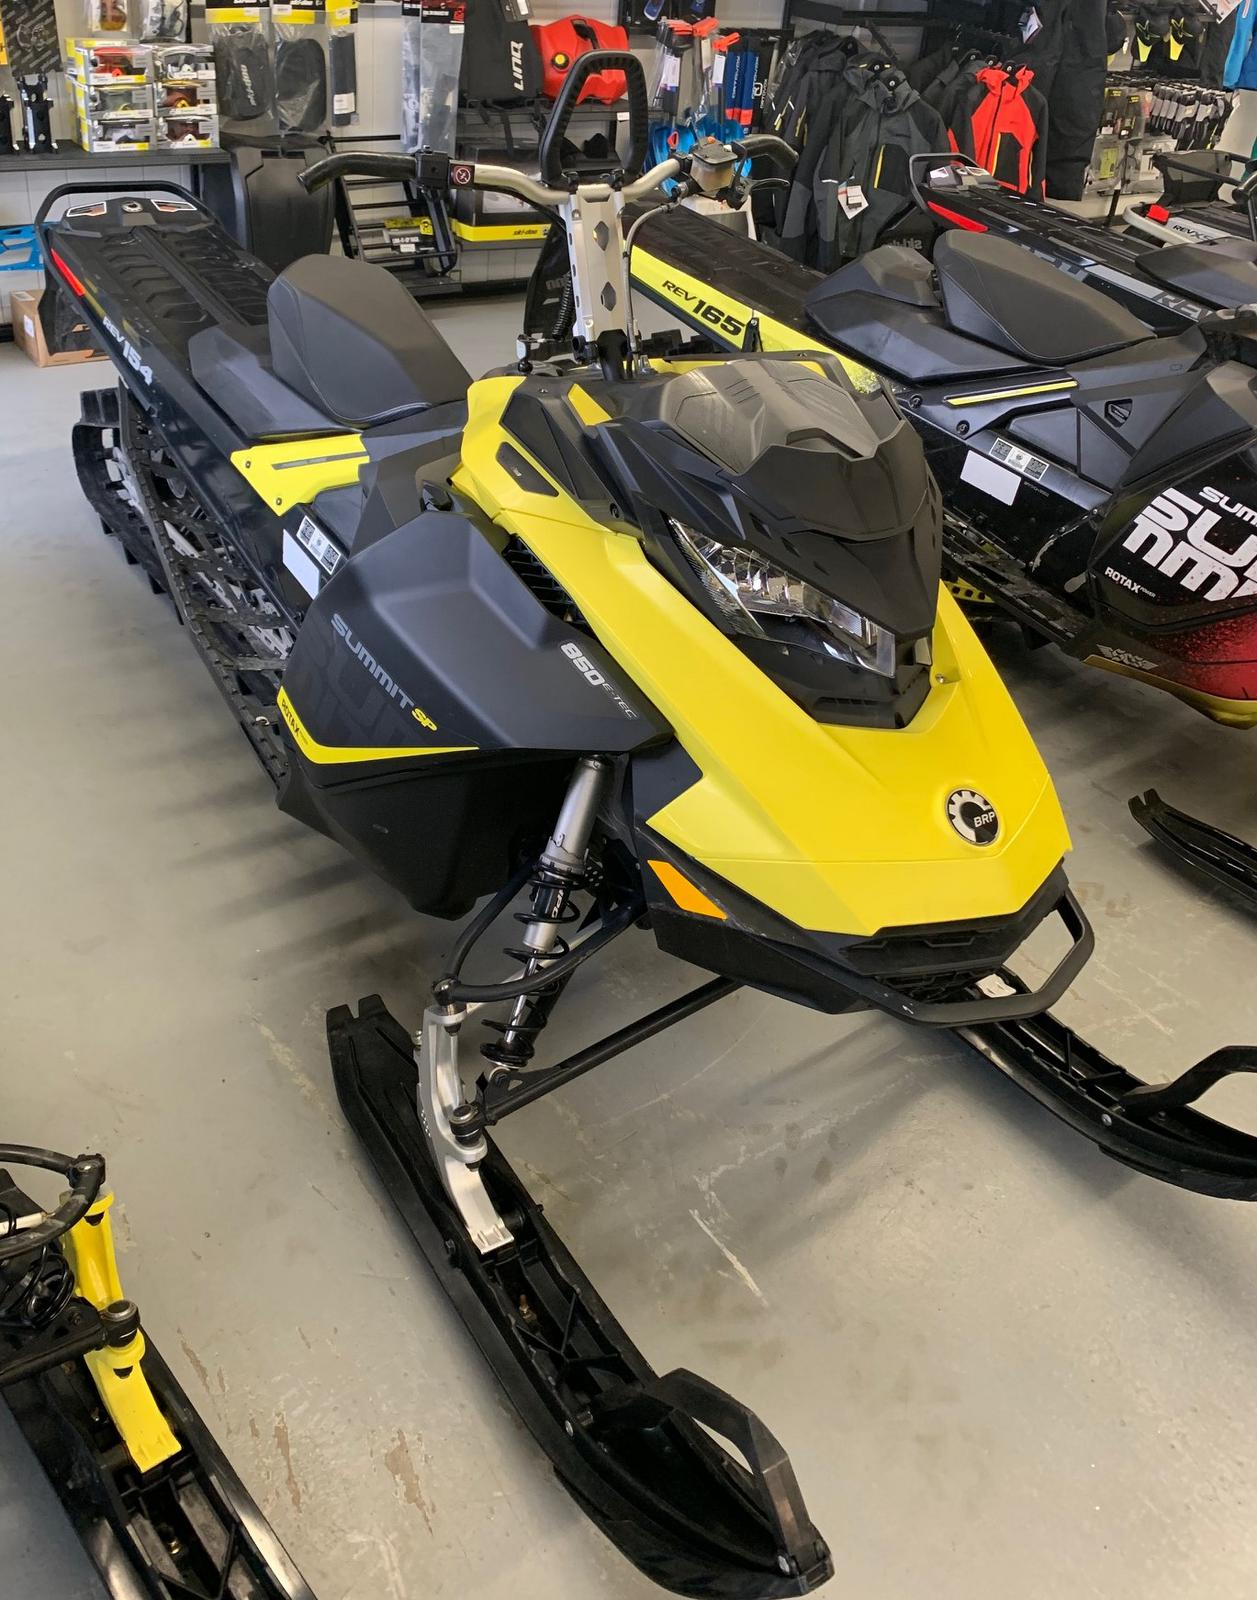 2017 Ski Doo Summit Sp 850 Etec 154